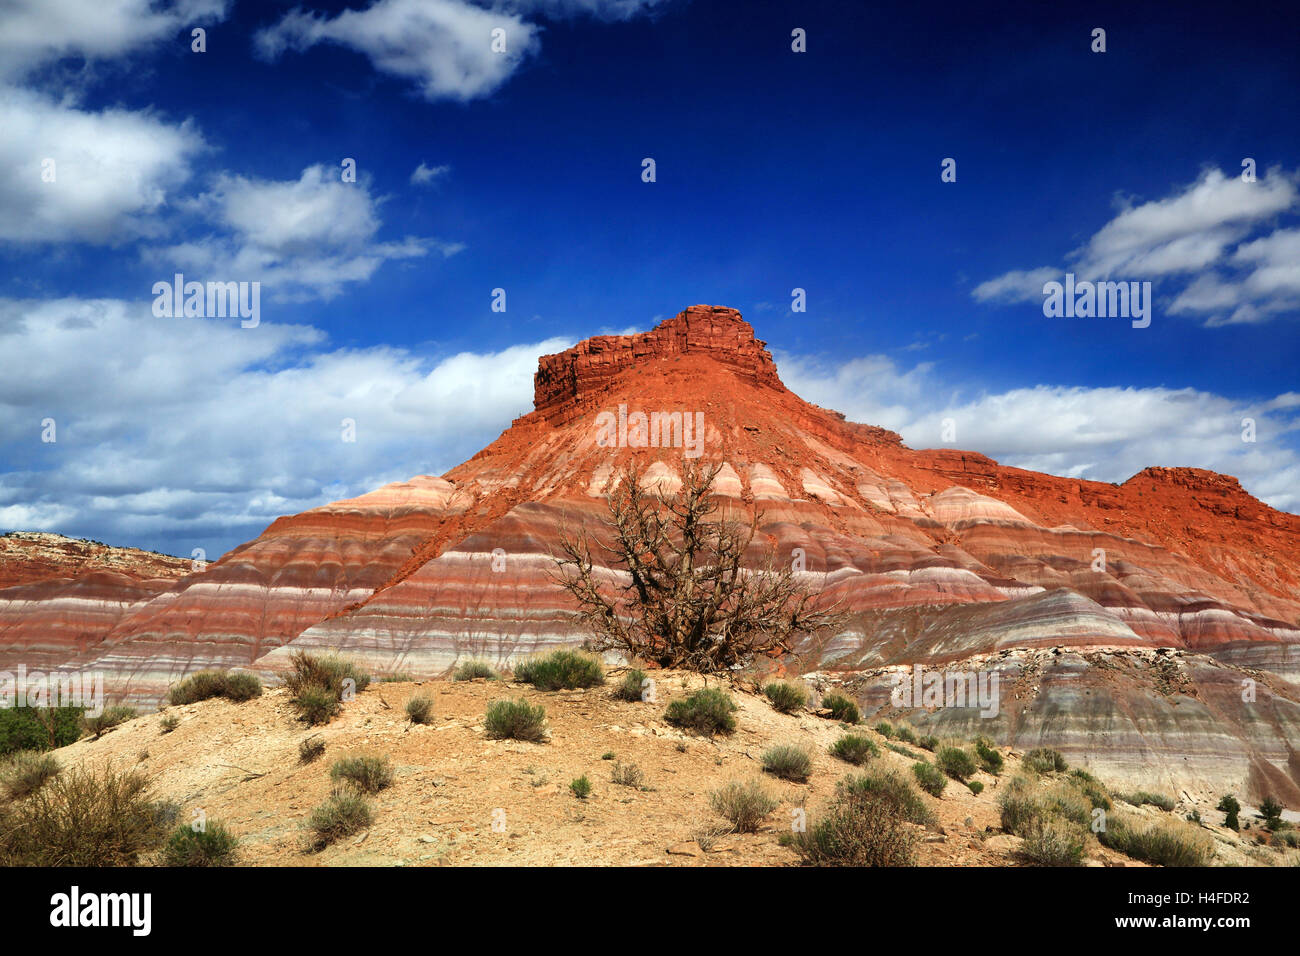 A cliff or butte in Escalante Grand Staircase National Monument in Utah looms over the desert. Stock Photo